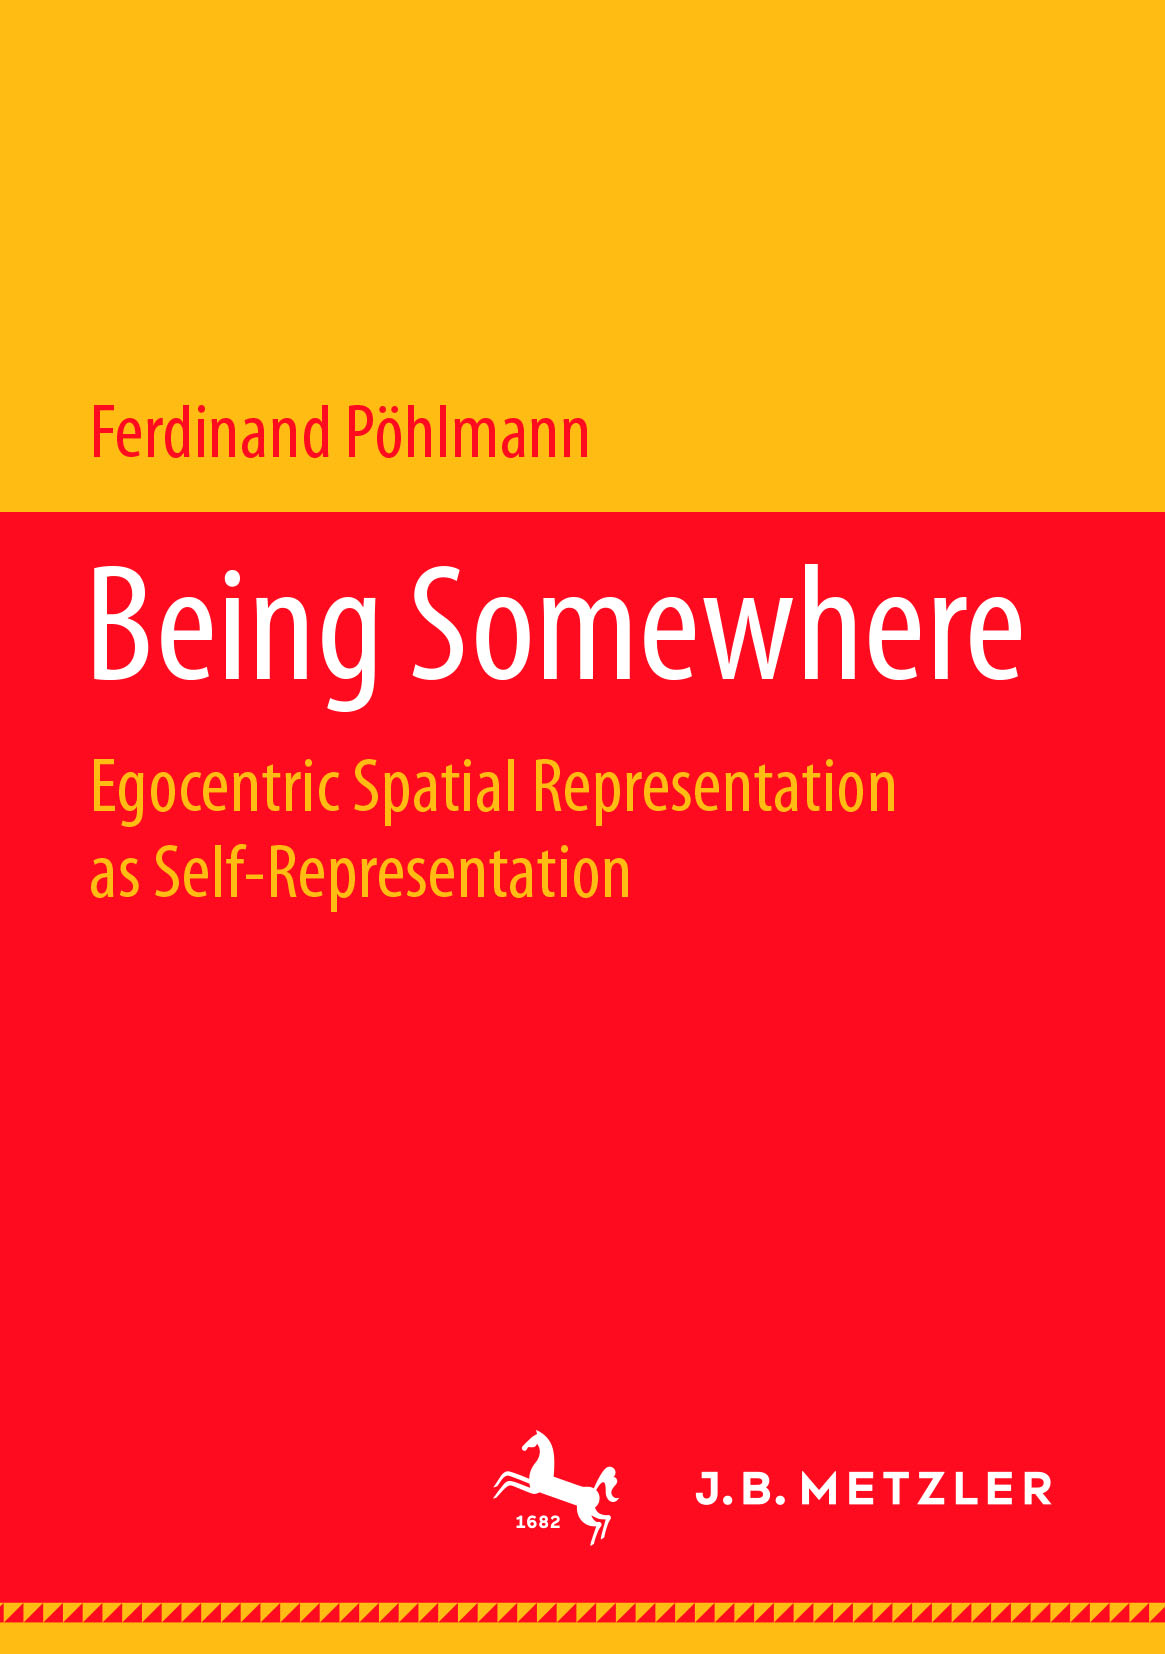 Pöhlmann, Ferdinand - Being Somewhere, ebook